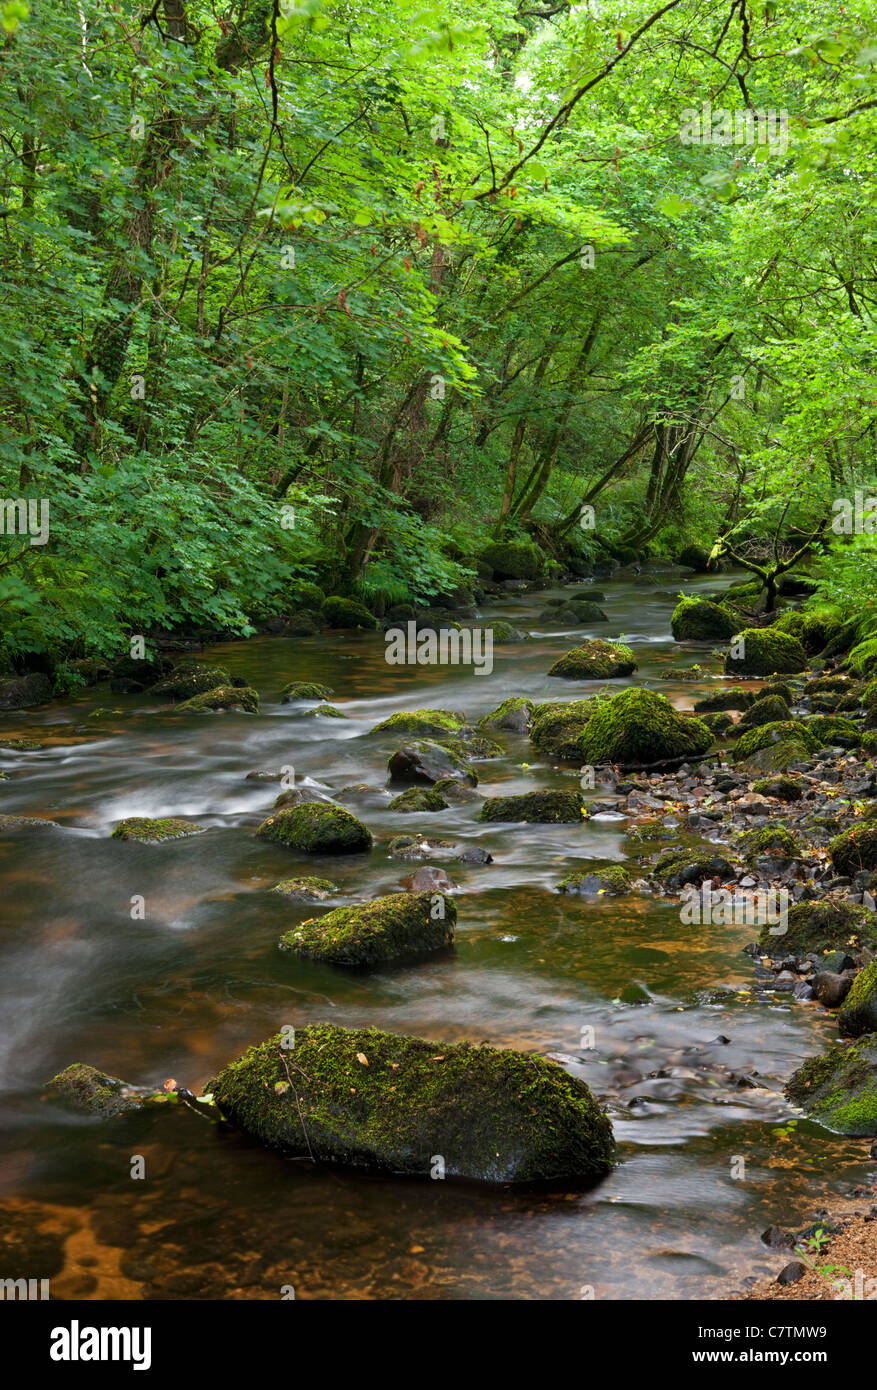 River Bovey running through Lustleigh Cleave, Dartmoor, Devon, England. Summer (July) 2011. - Stock Image